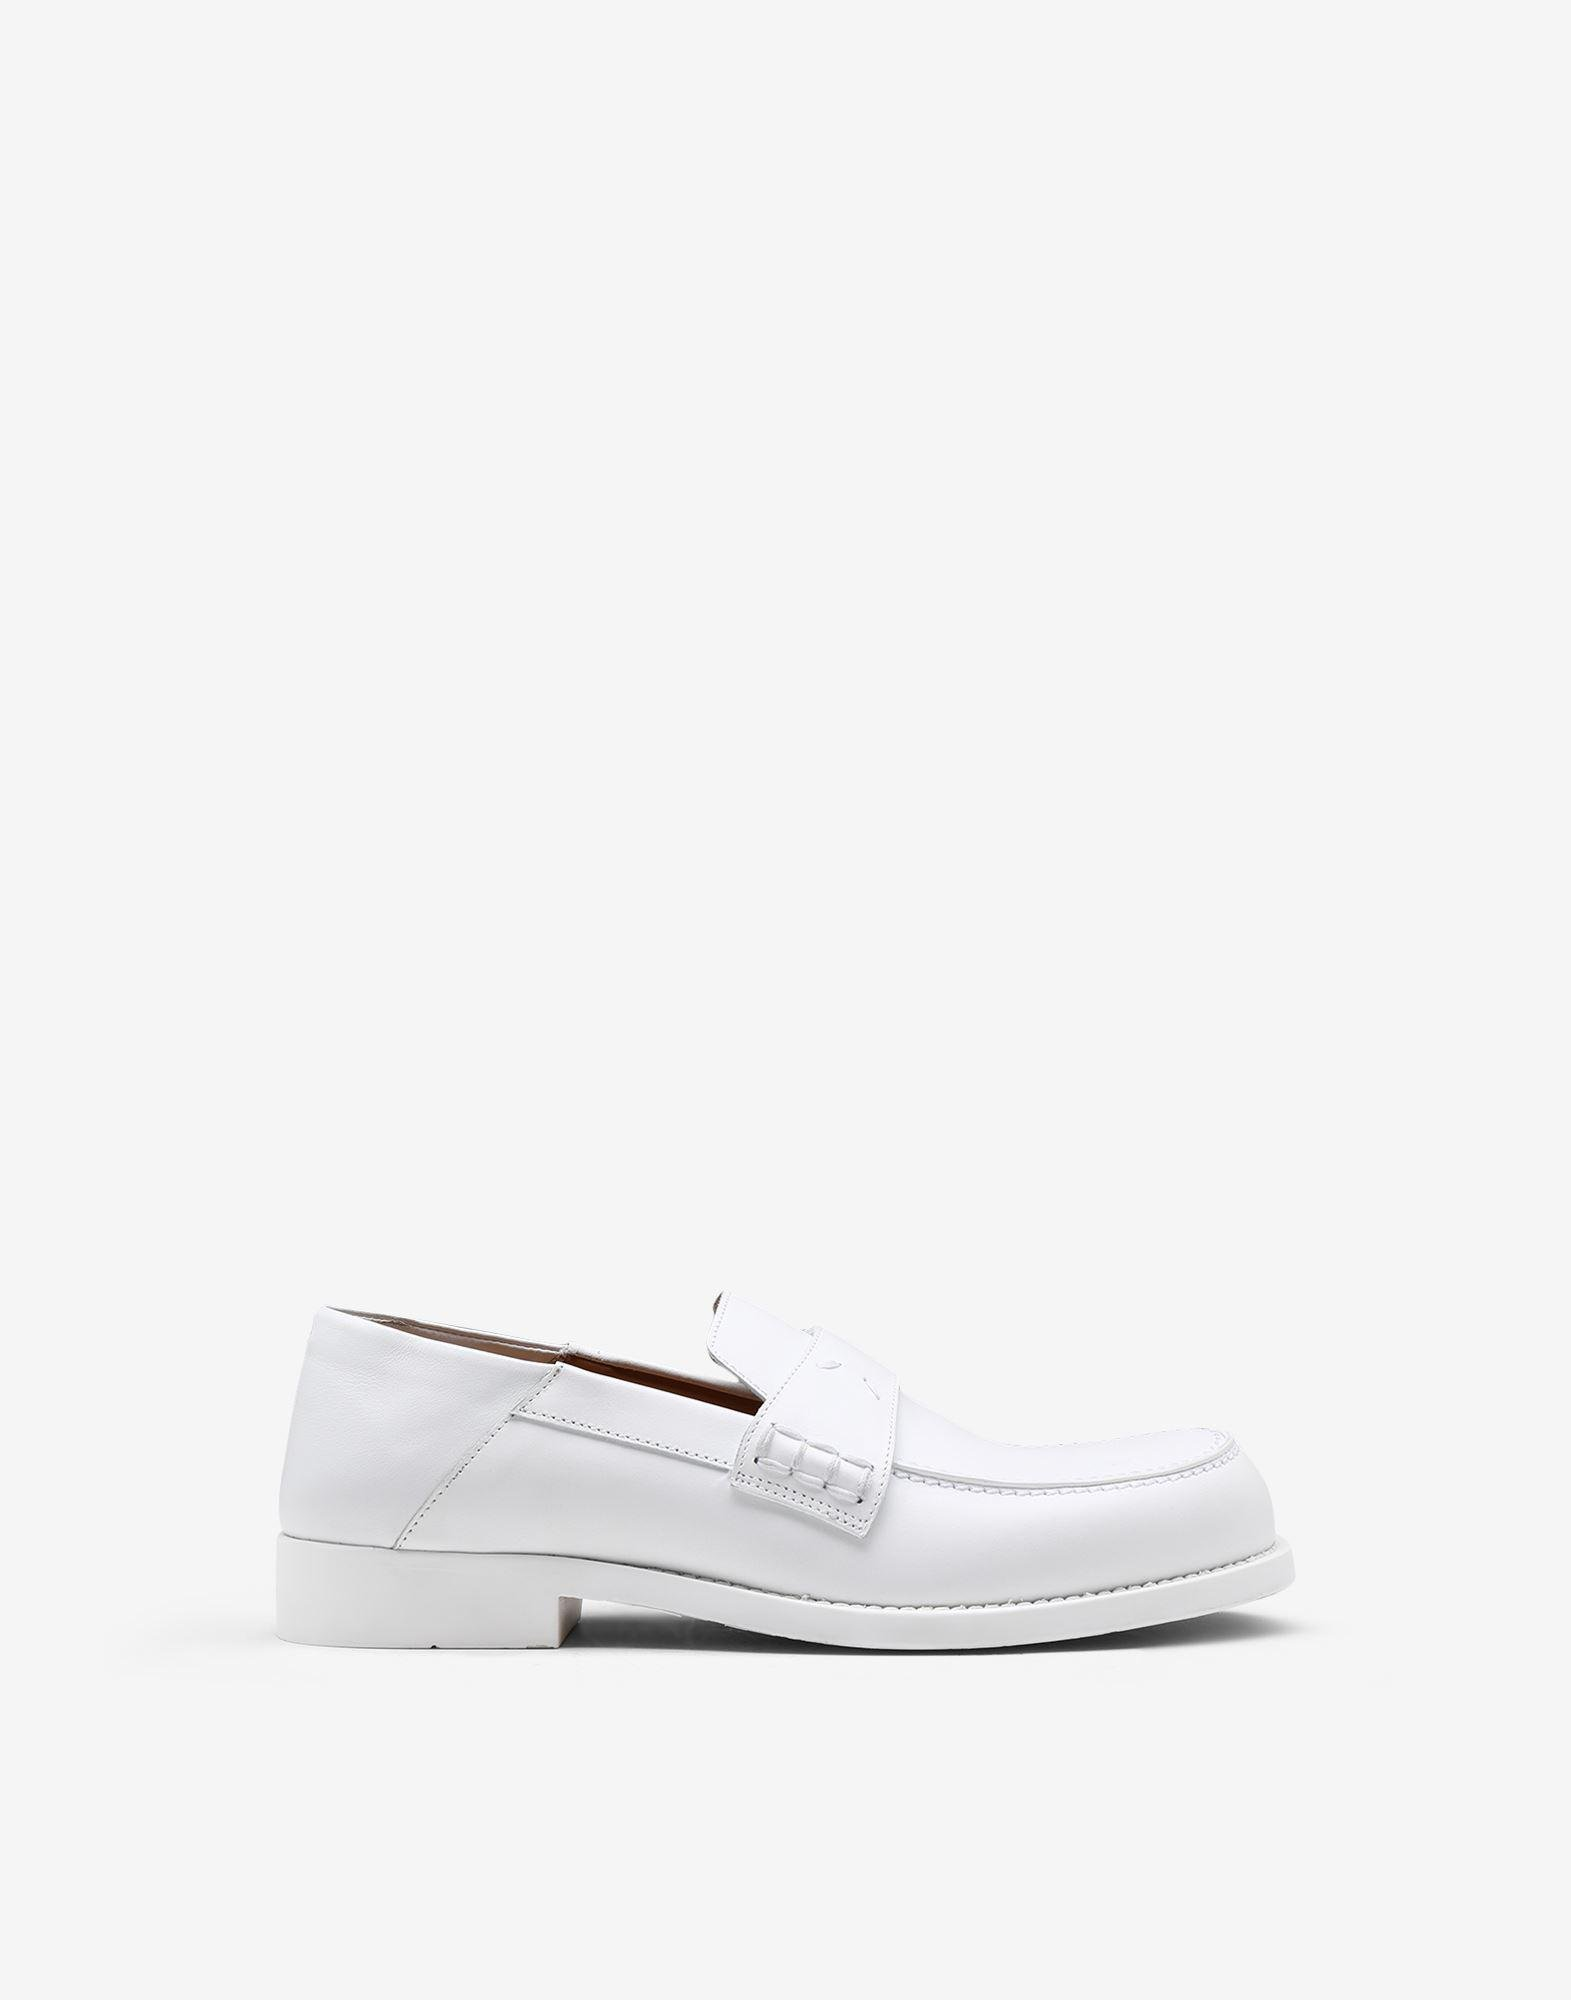 Camden loafers